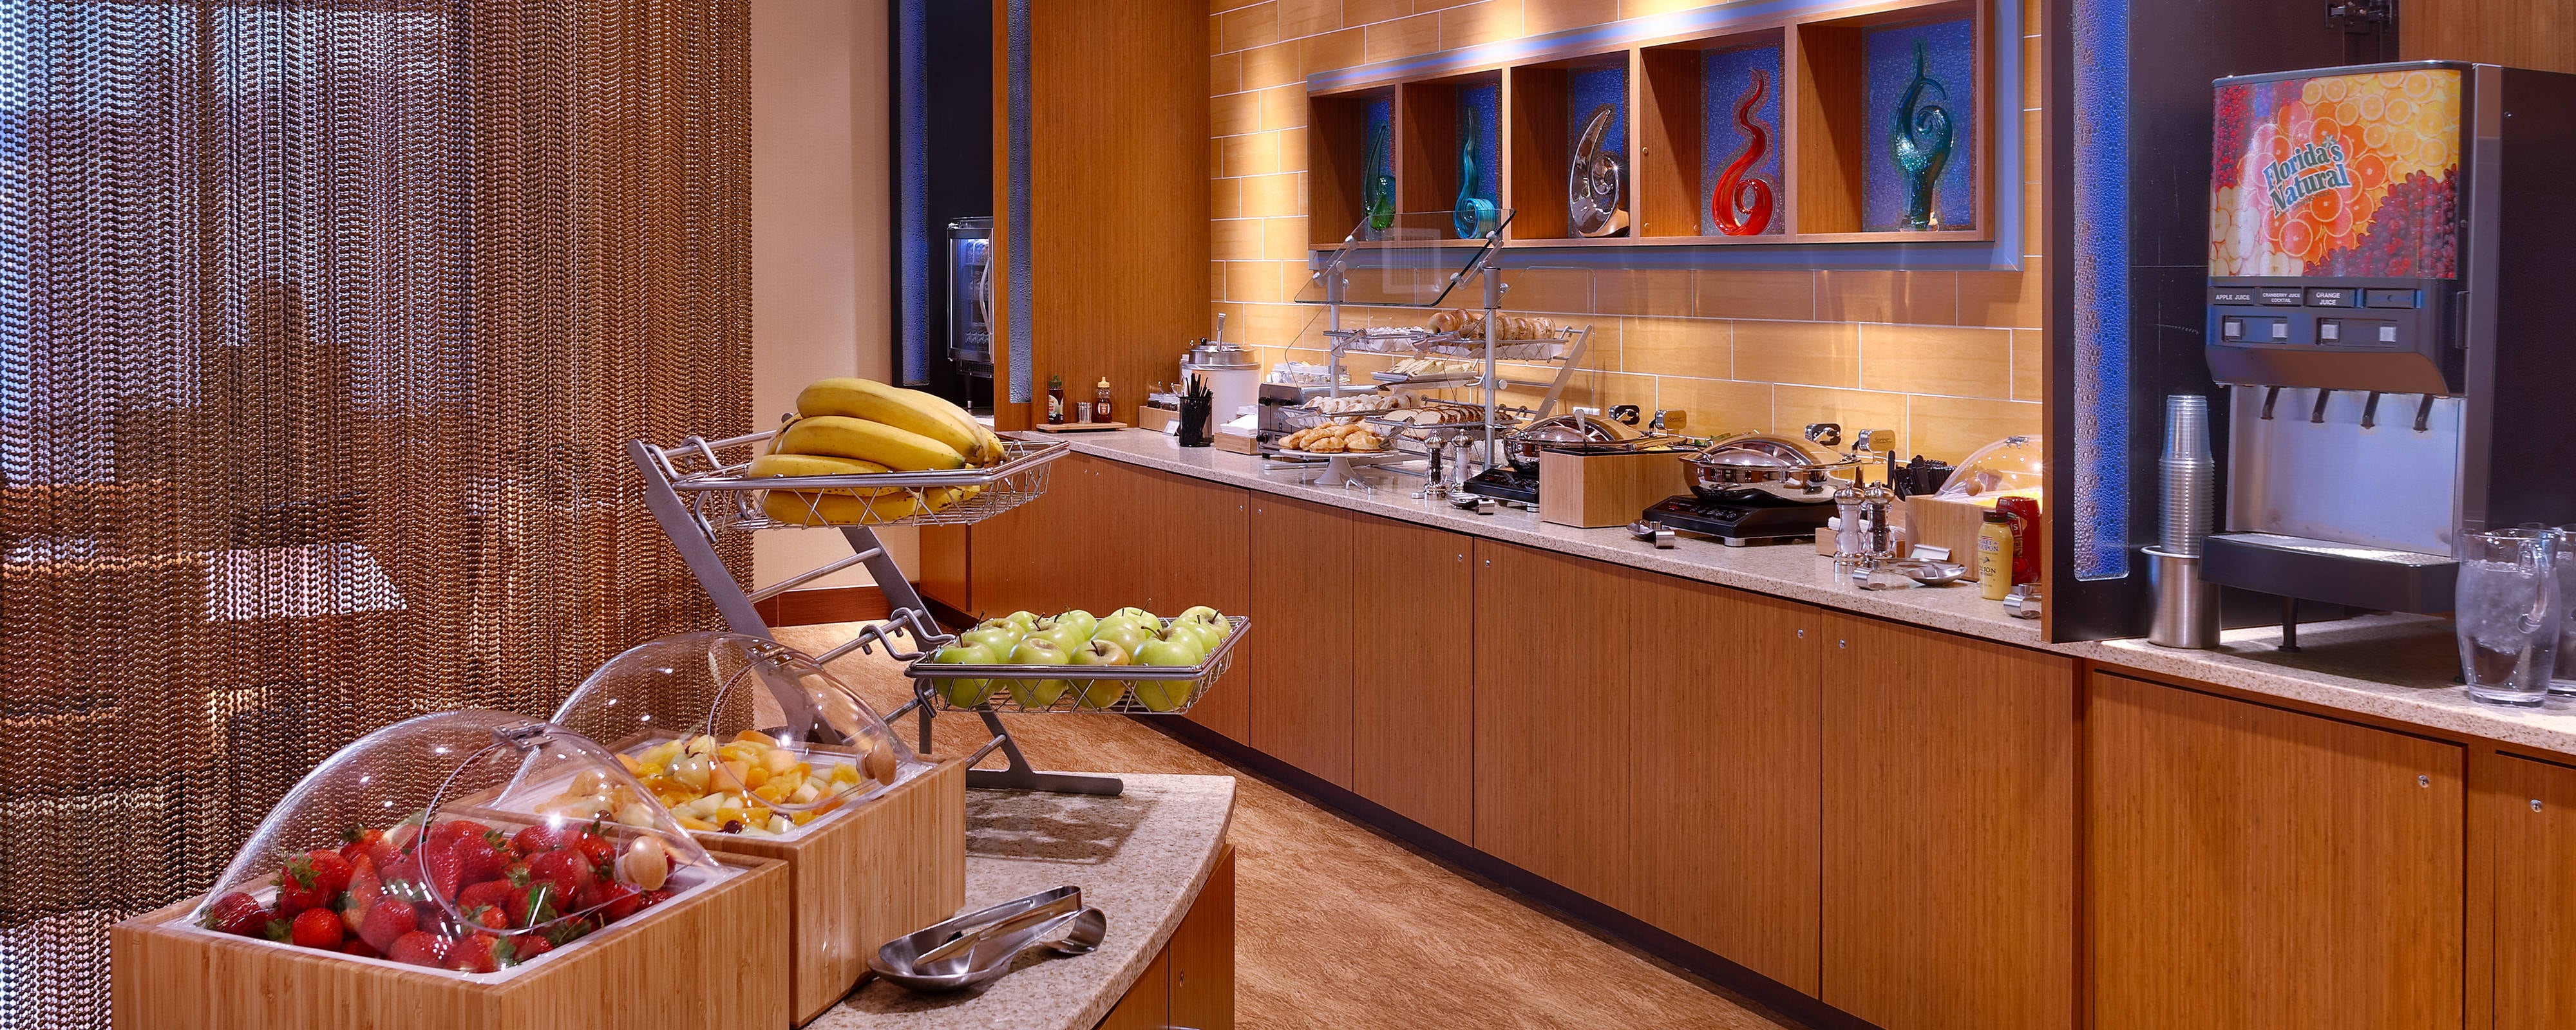 Coeur d\'Alene Hotels With Breakfast | SpringHill Suites Coeur d\'Alene